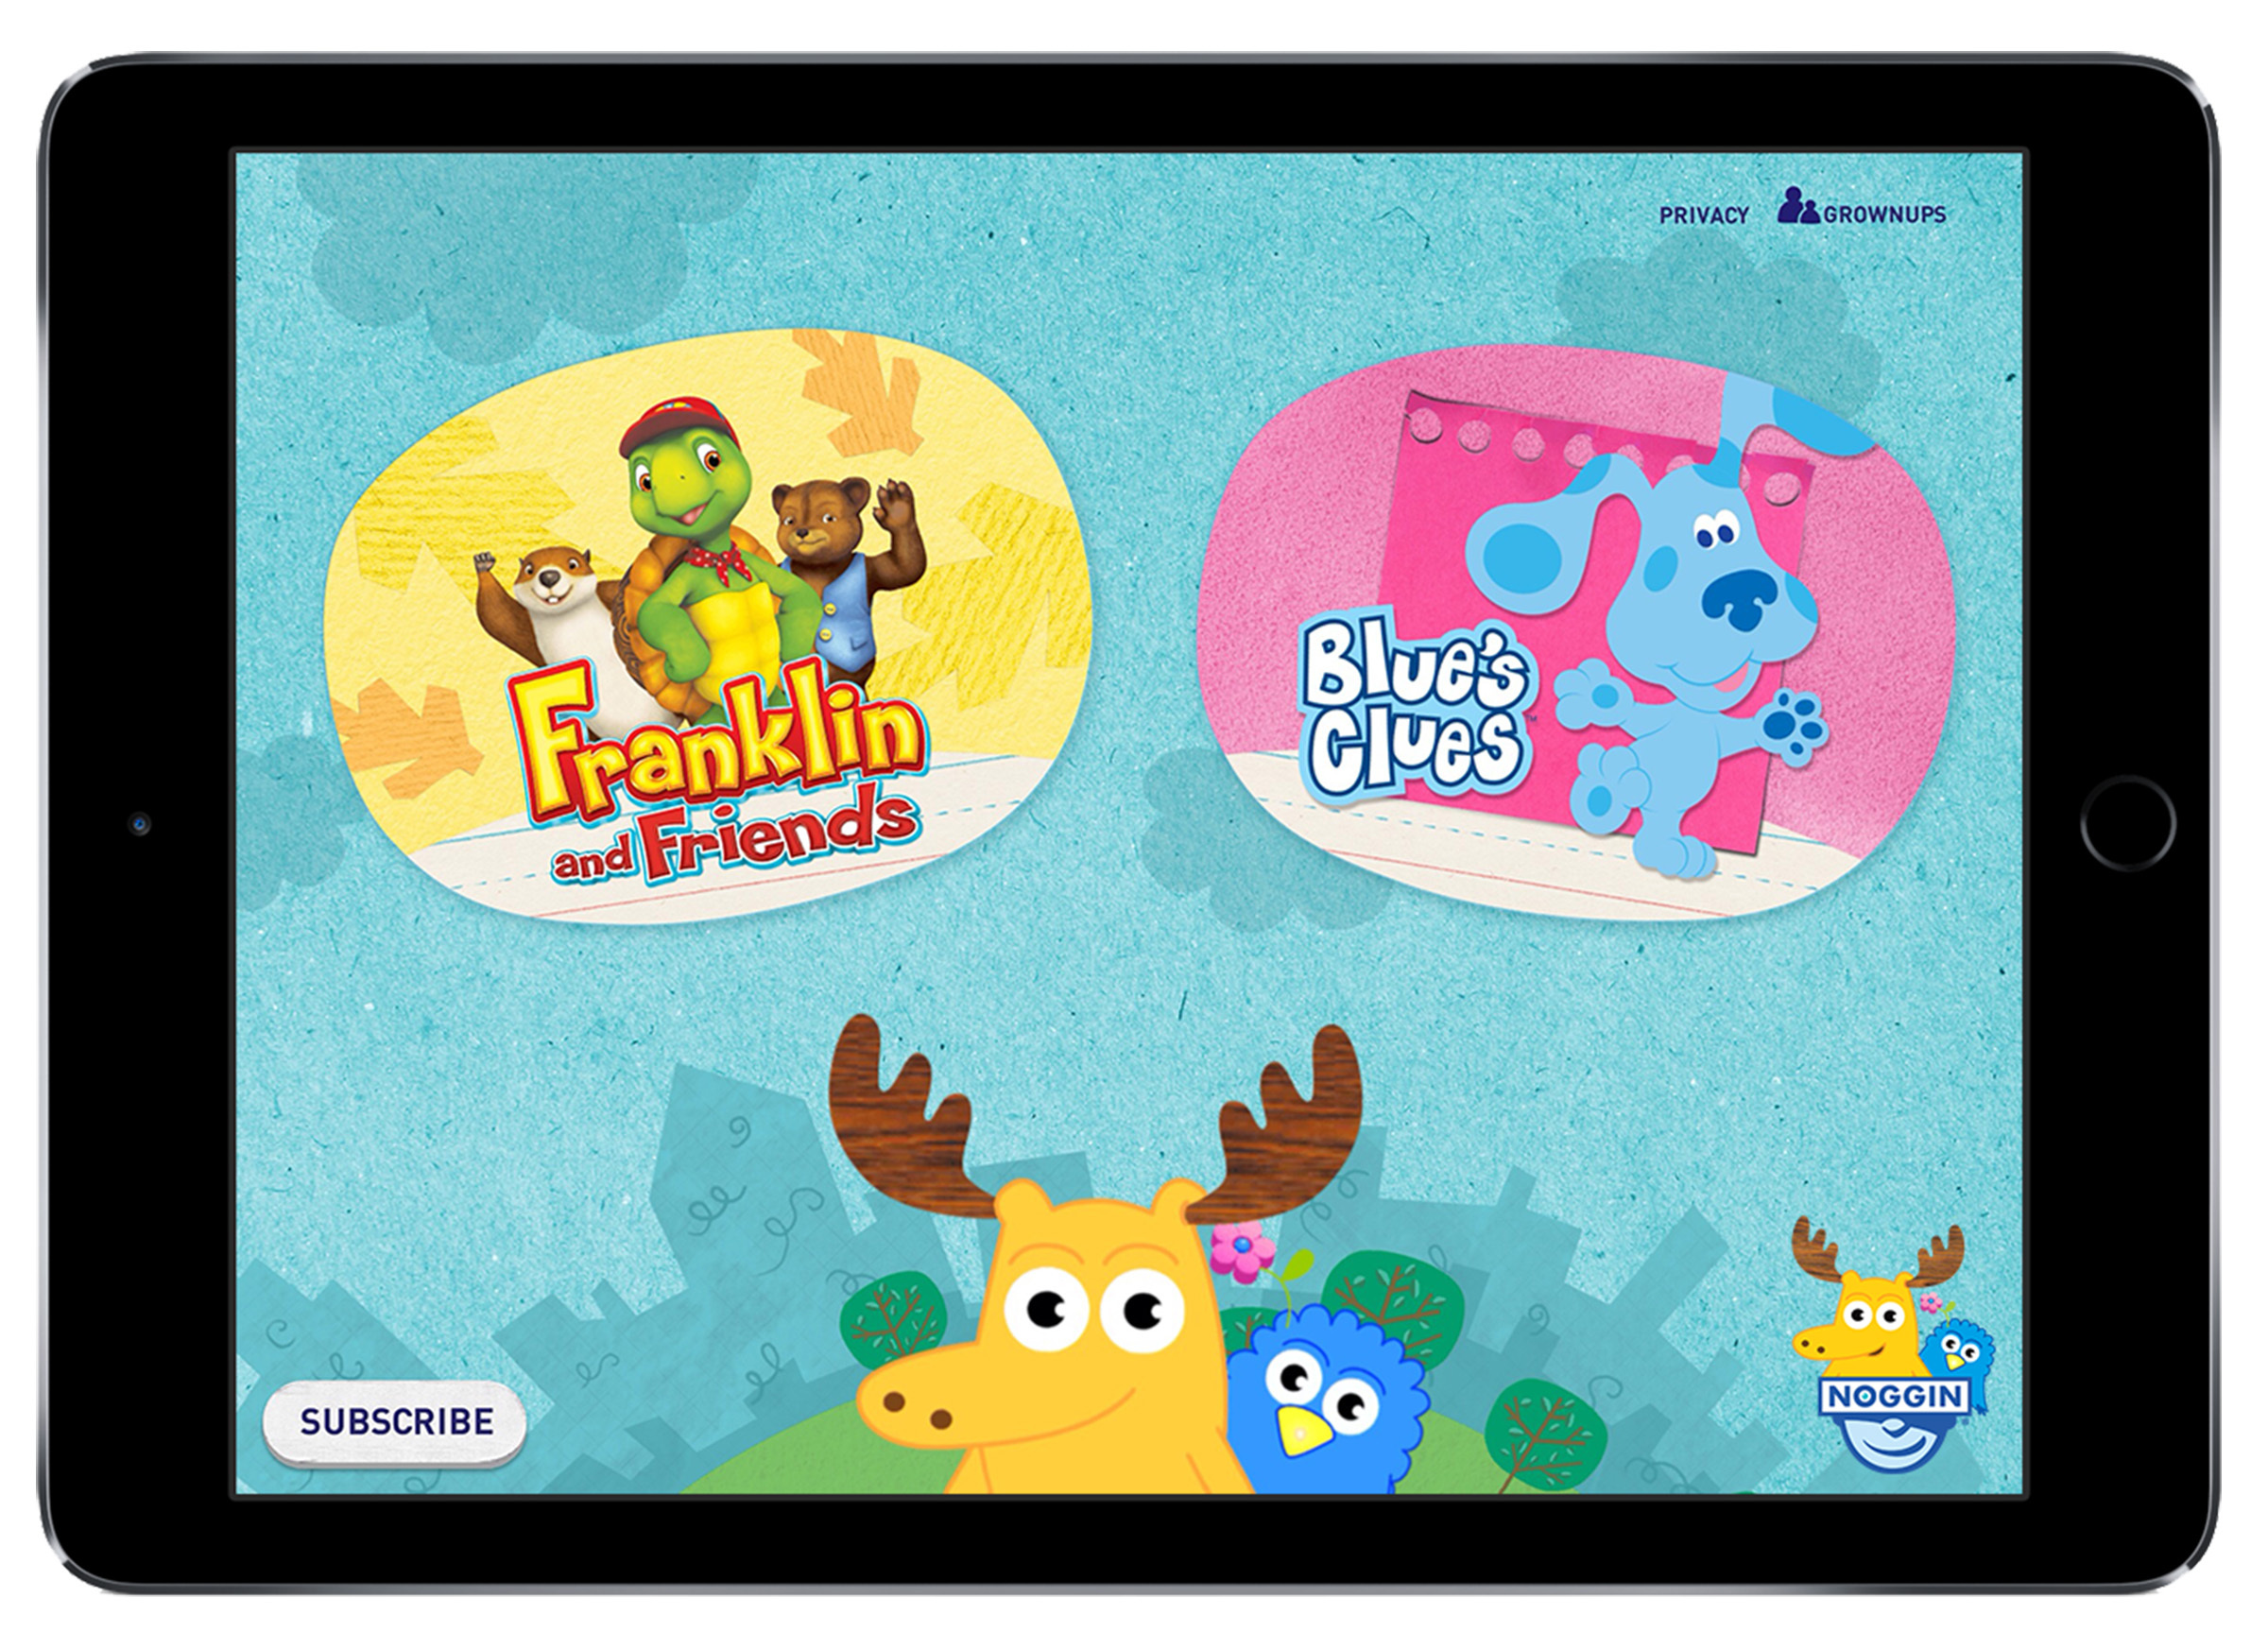 Nickelodeon Launches Noggin New Mobile Subscription